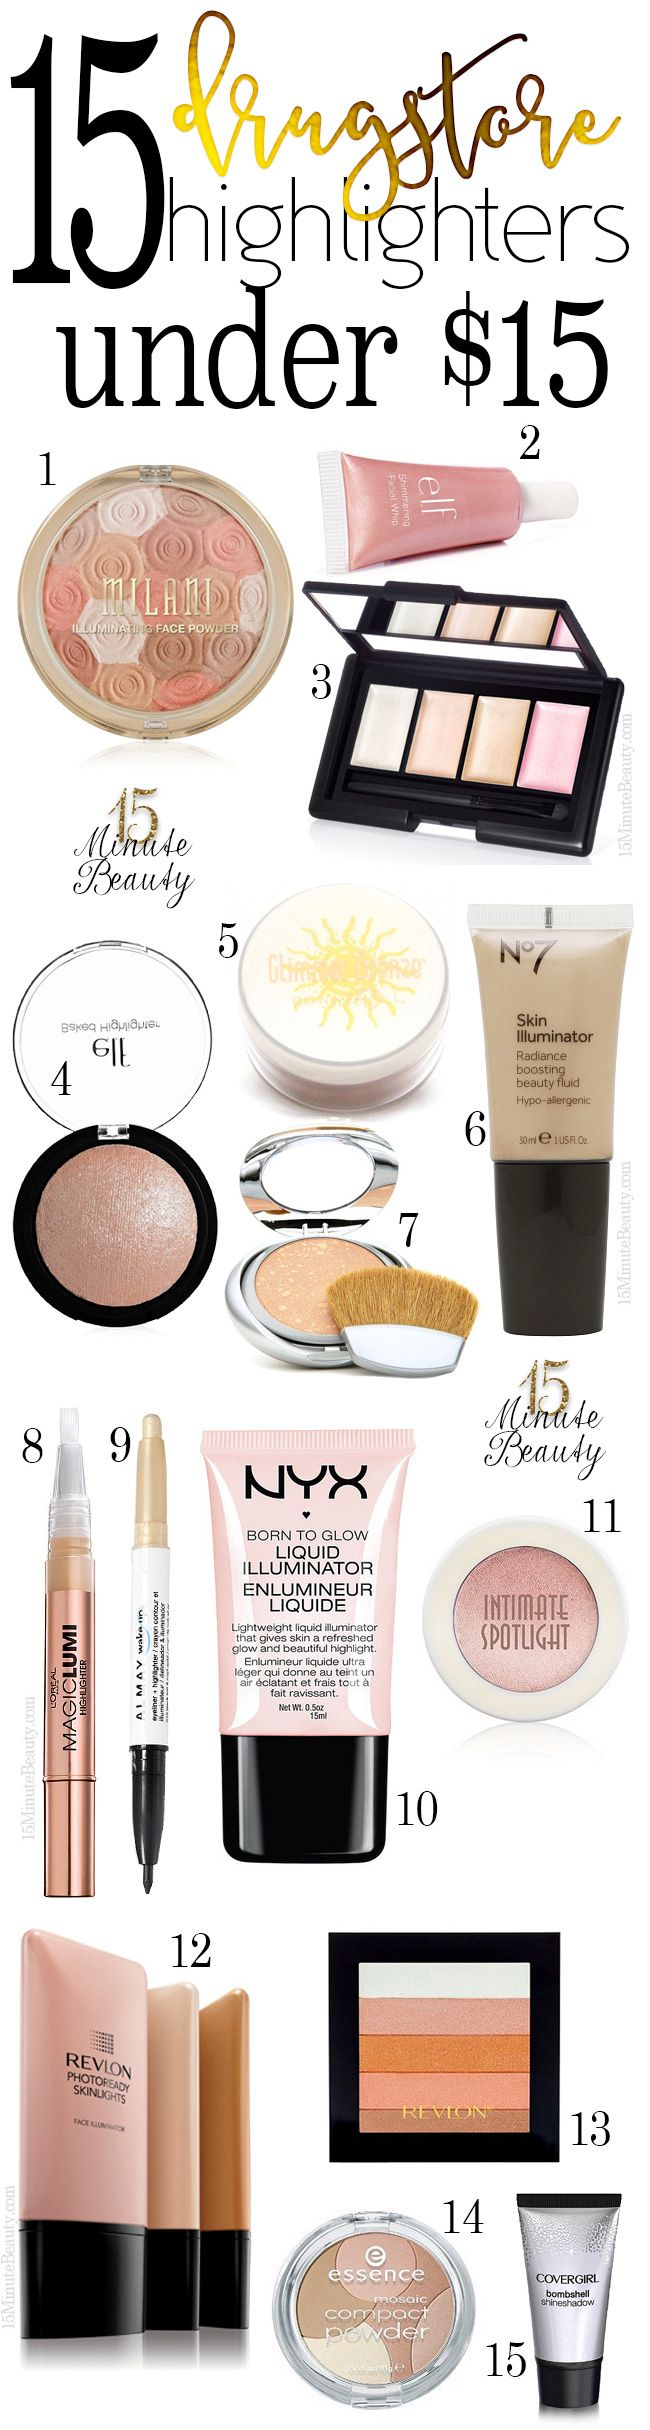 15 Amazing Drugstore Highlighters Under 15 15 Minute Beauty Fanatic Highlighter Makeup Makeup Dupes Drugstore Highlighter